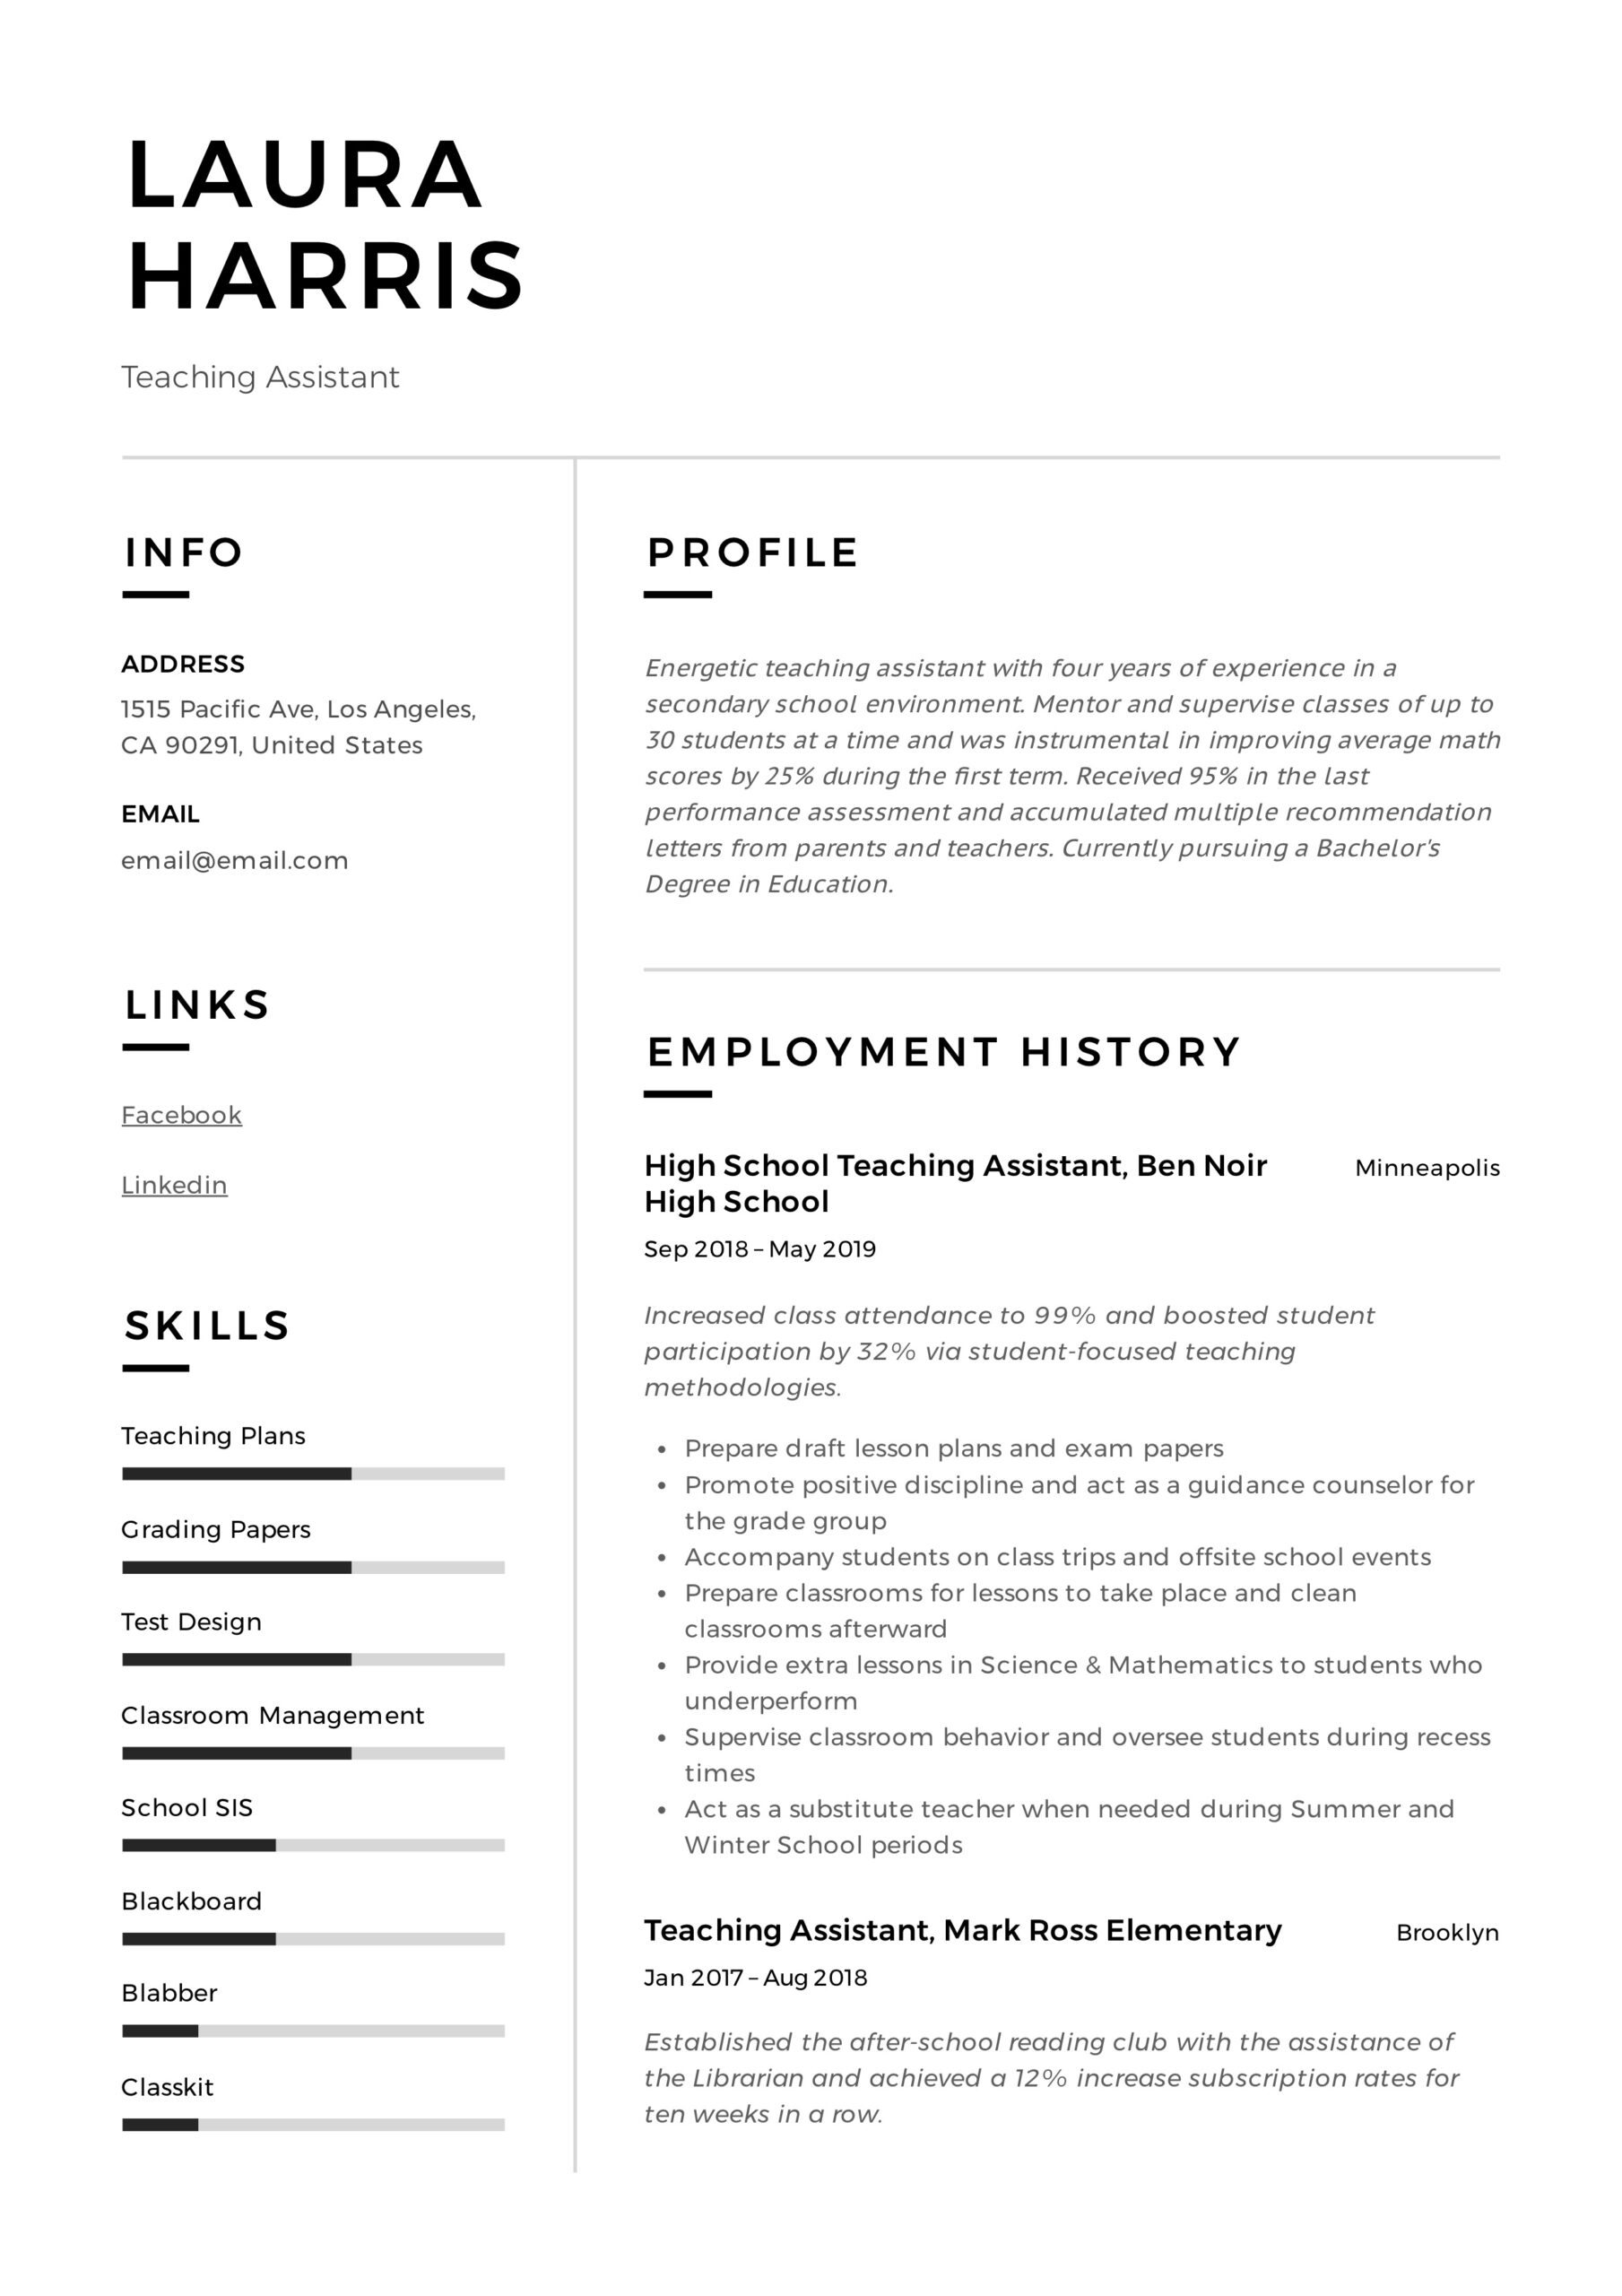 teaching assistant resume writing guide templates pdf responsibilities template corporate Resume Teaching Assistant Responsibilities Resume